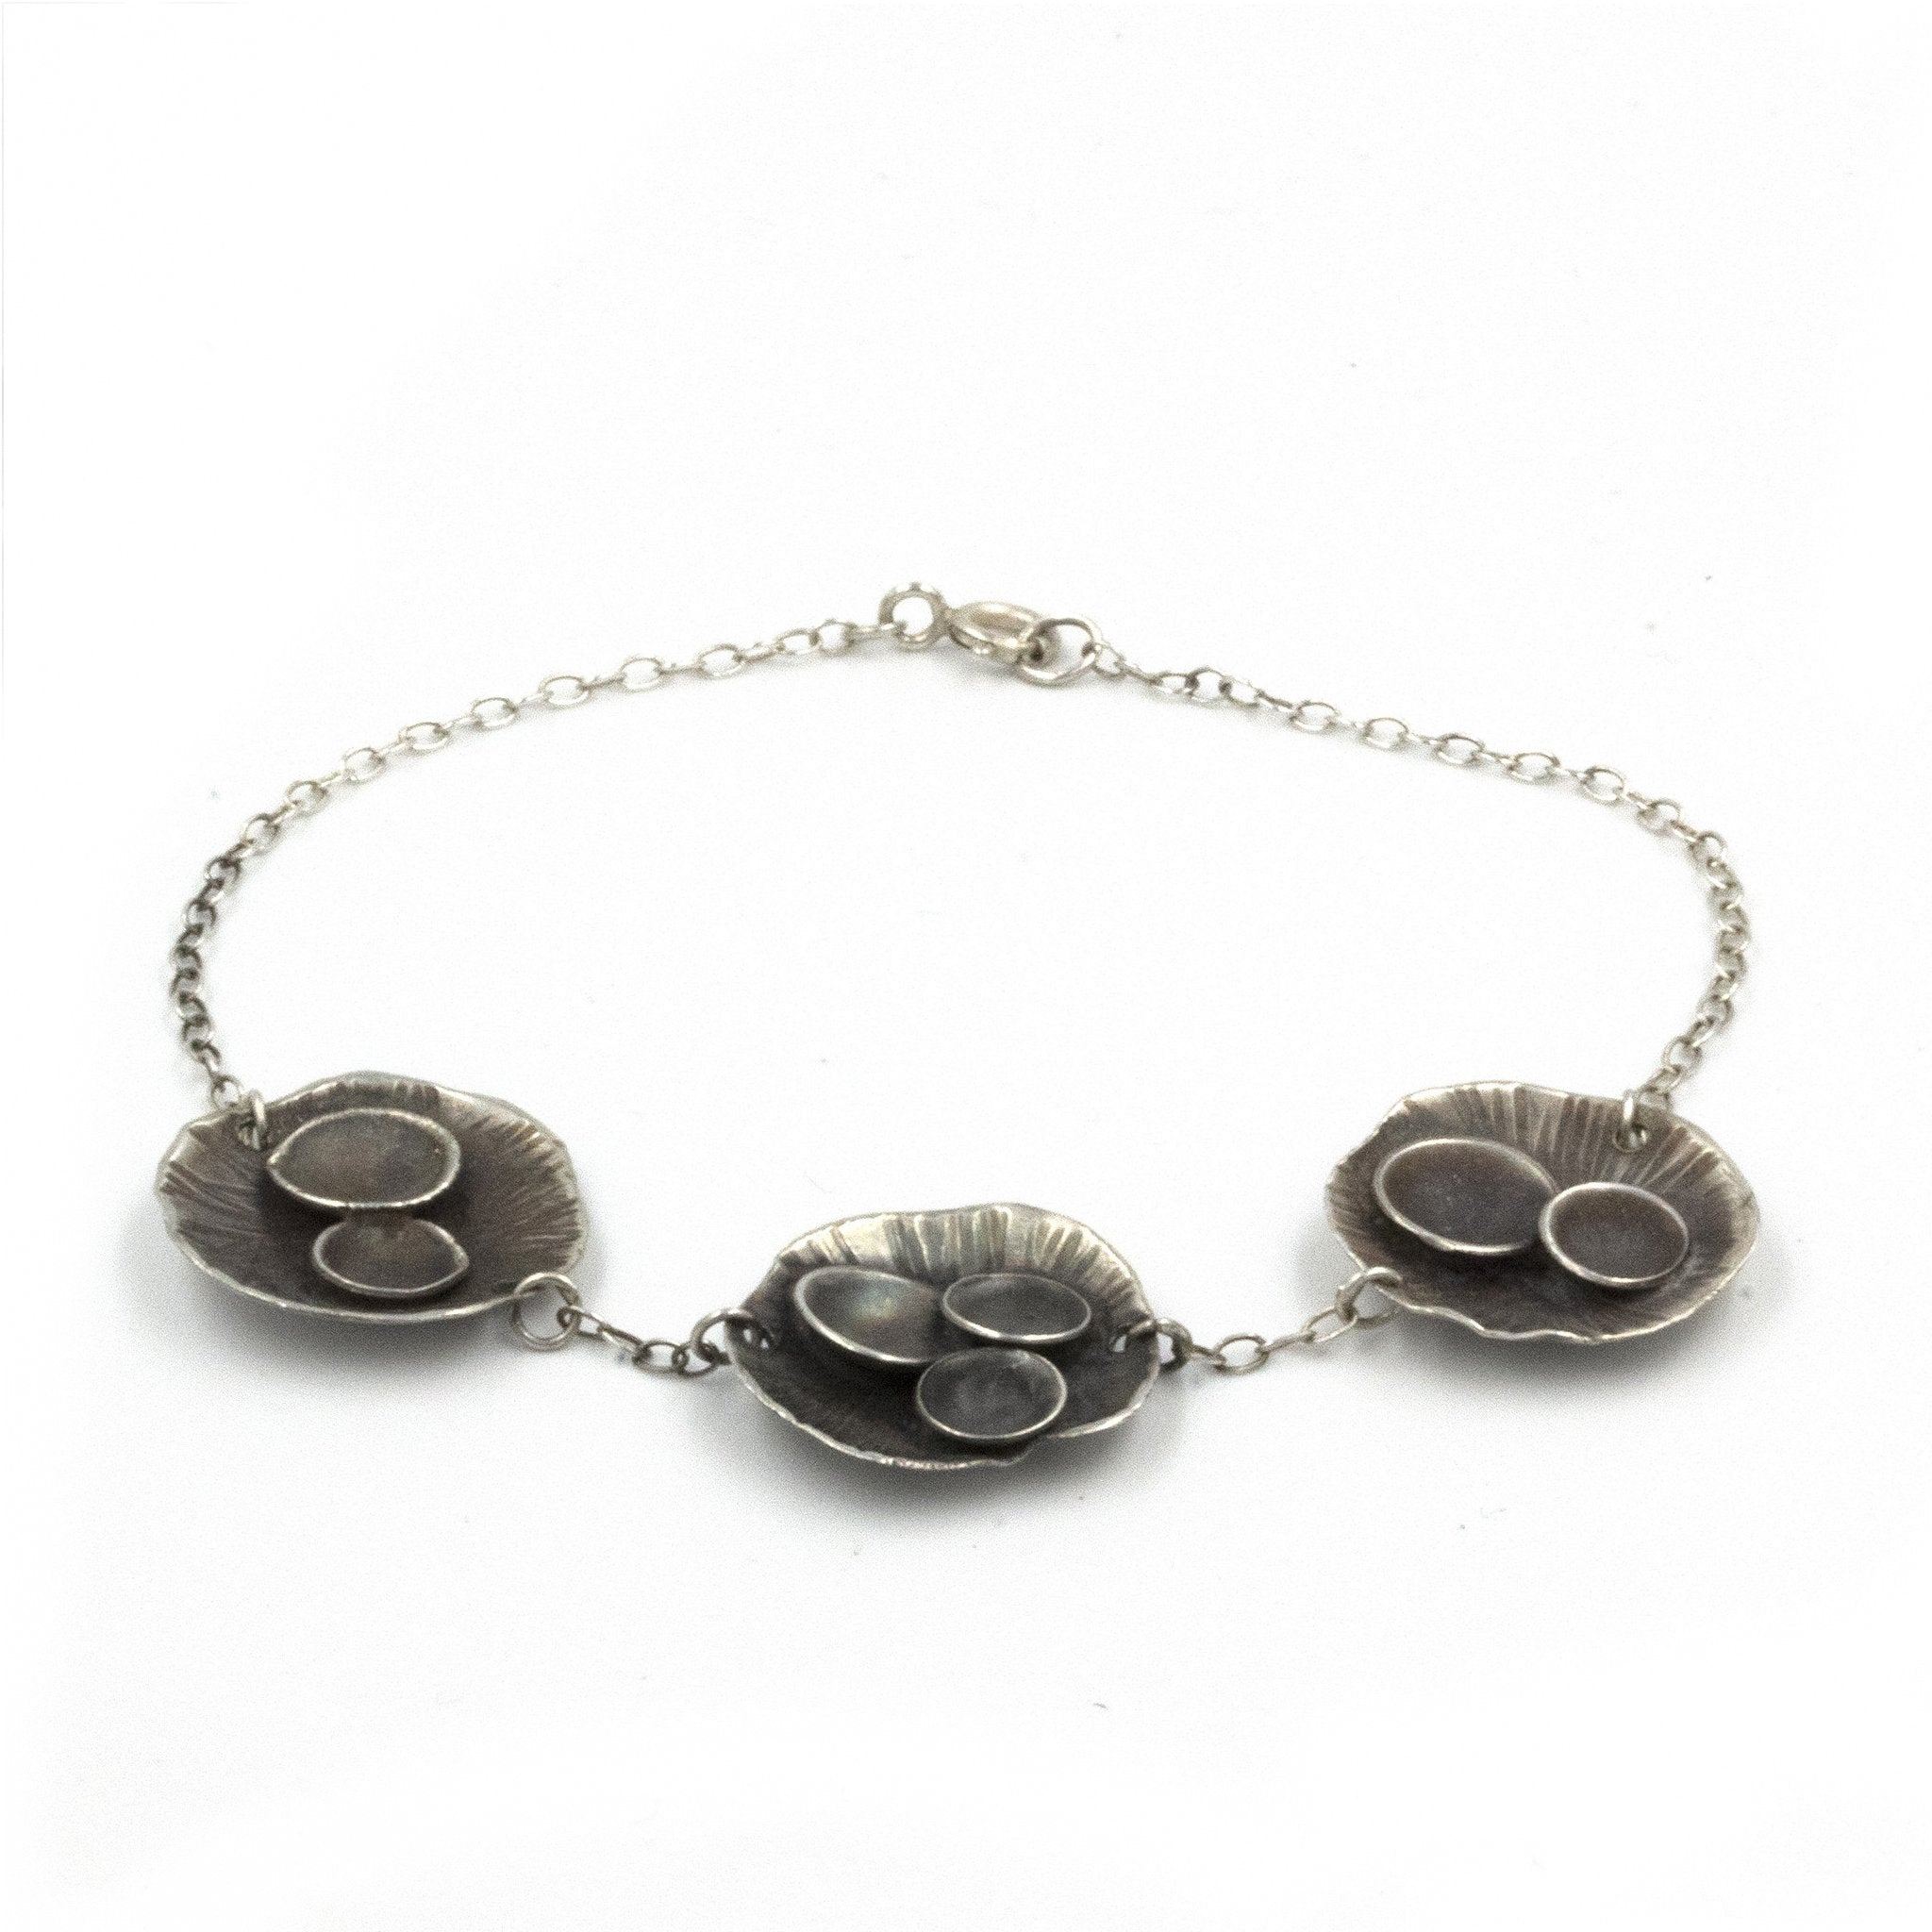 Handmade Rock Pool bracelet, made in sterling silver, and inspired by rock pools on the Cornish Coast